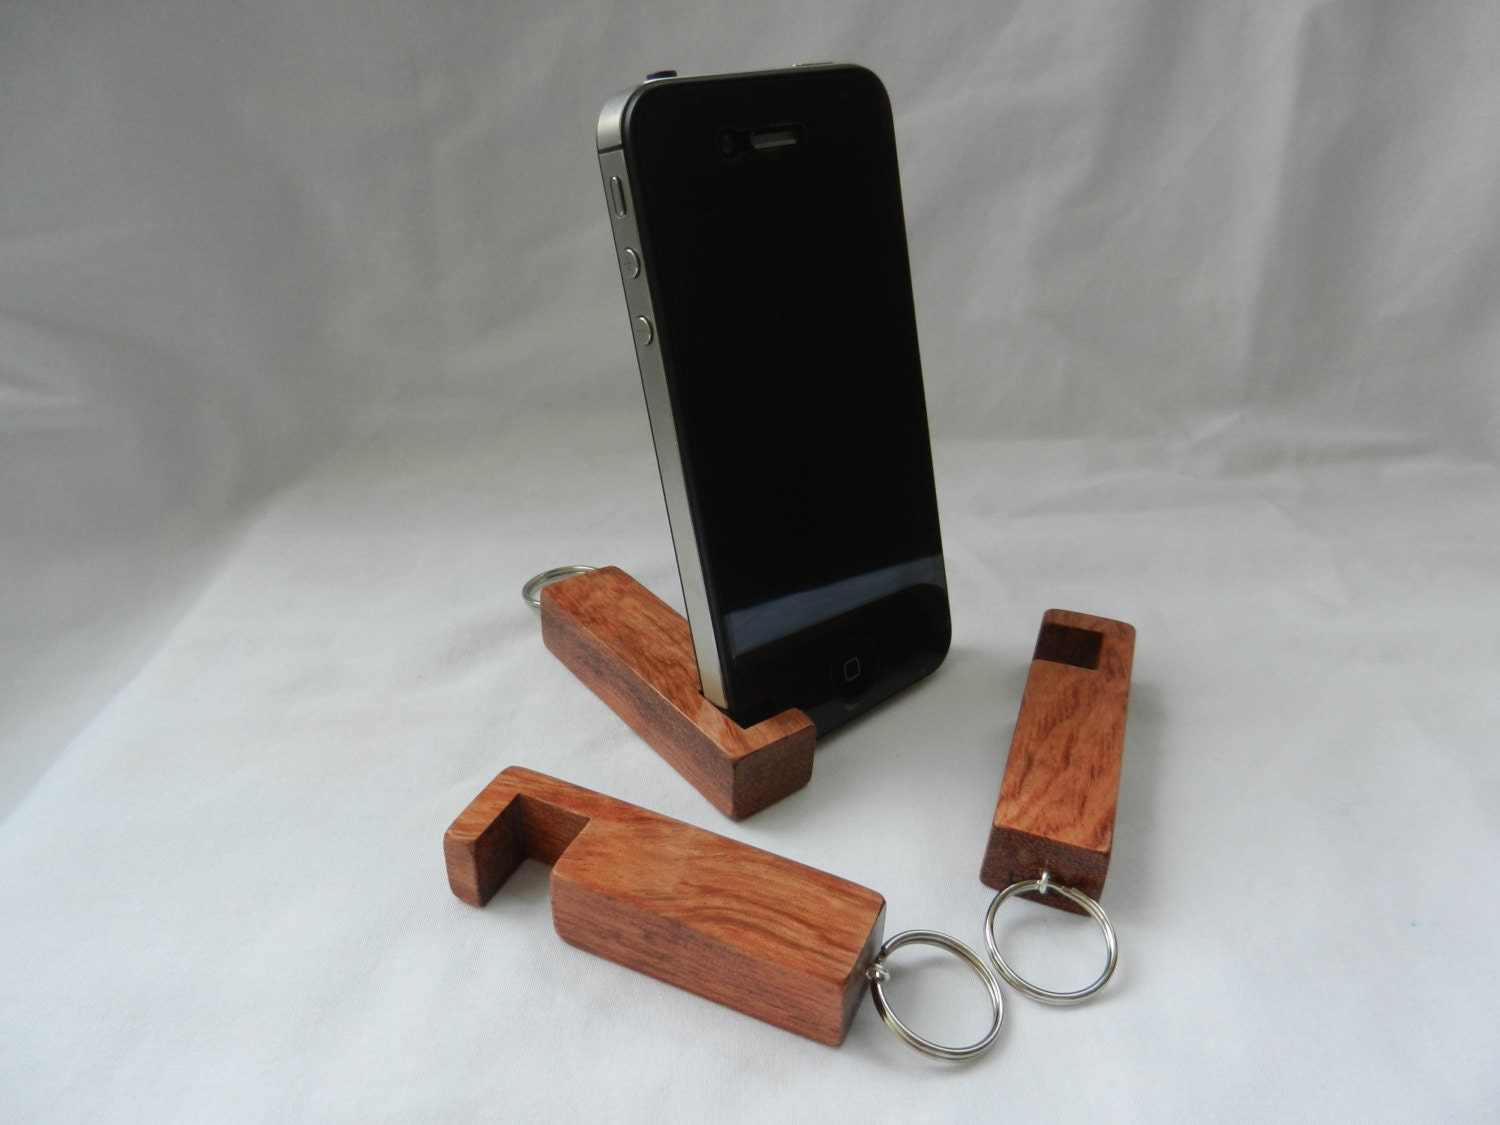 Marvelous photograph of Compact Phone Stand inotch1 in Bubinga wooden phone stand with #854931 color and 1500x1125 pixels